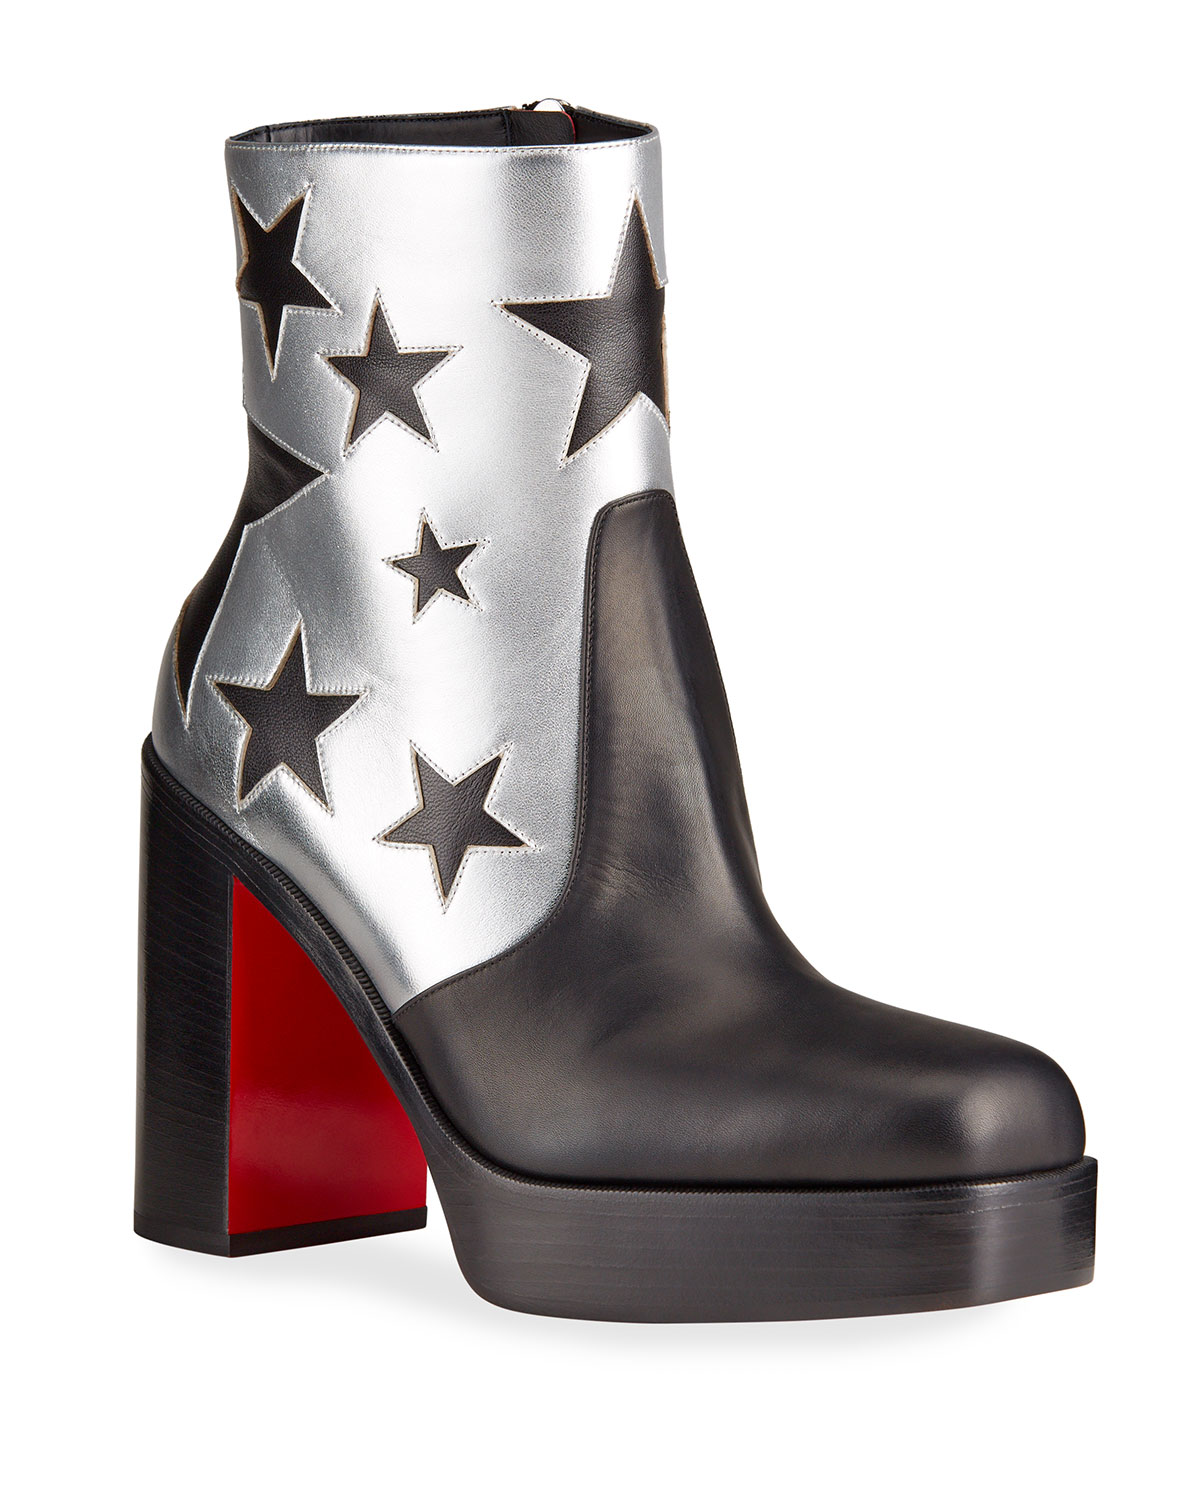 Christian Louboutin MEN'S STAGE METALLIC STAR RED SOLE PLATFORM BOOTS